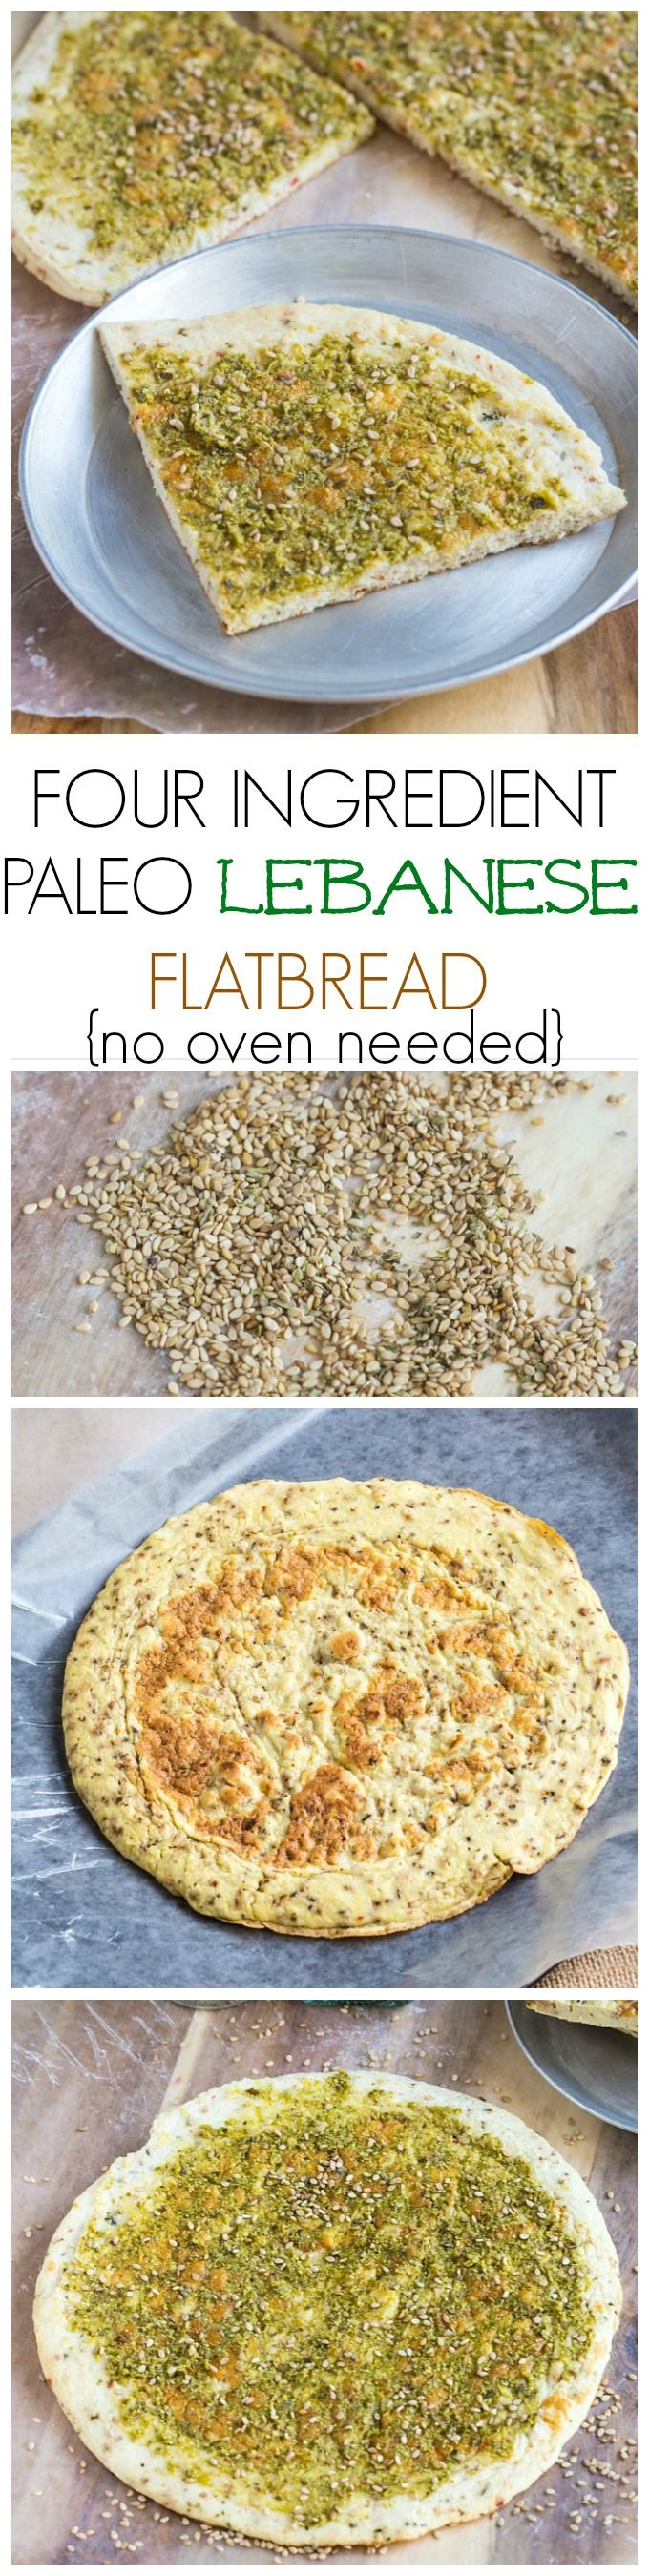 Flatbread  Whole ingredients or winter no are and snack and carb needed meal  coat Lebanese Just Paleo  Paleo  delicious low A down free   light four Pinteres         oven  gluten